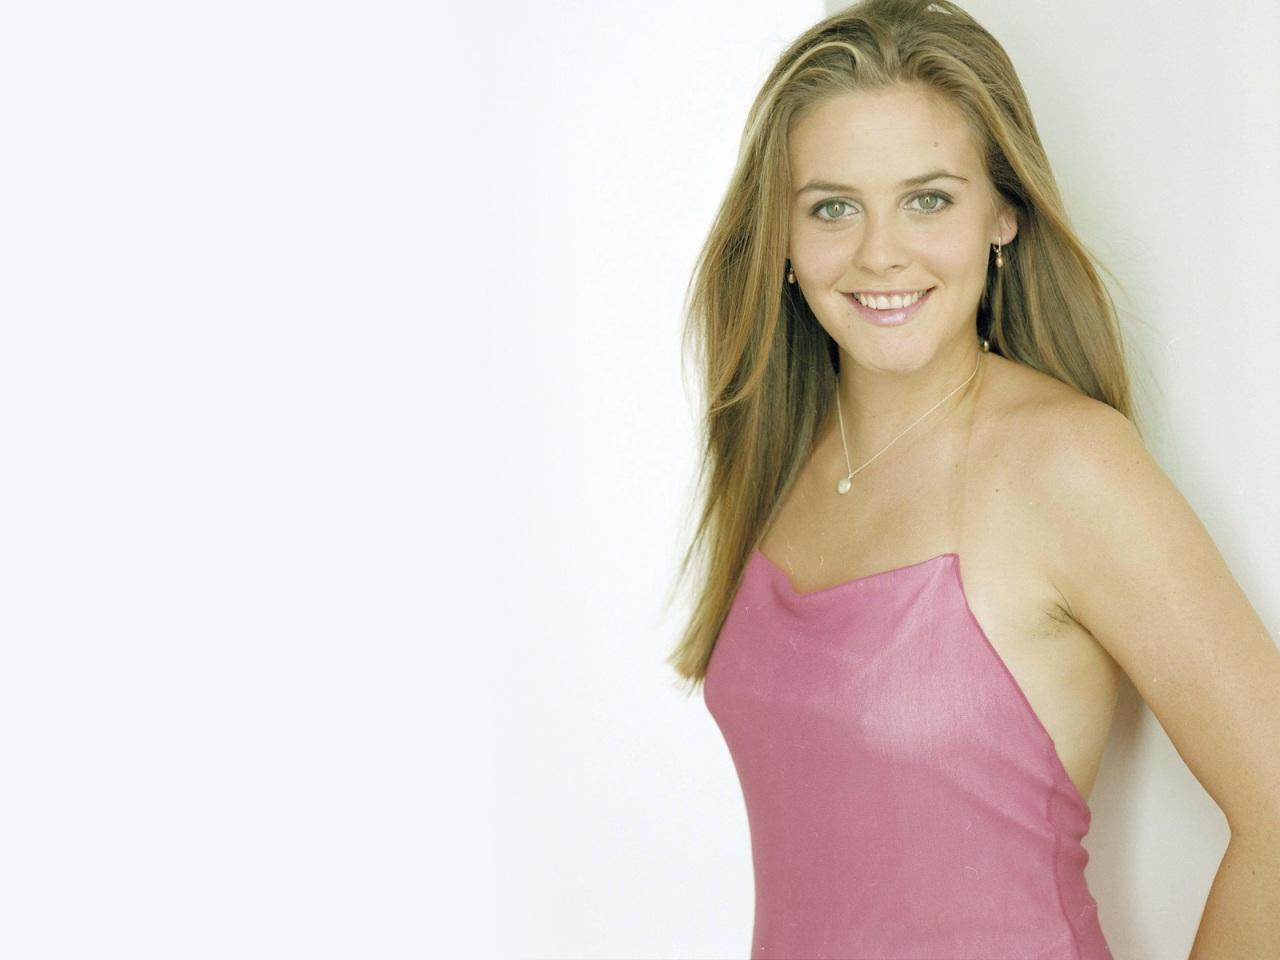 alicia silverstone young naked